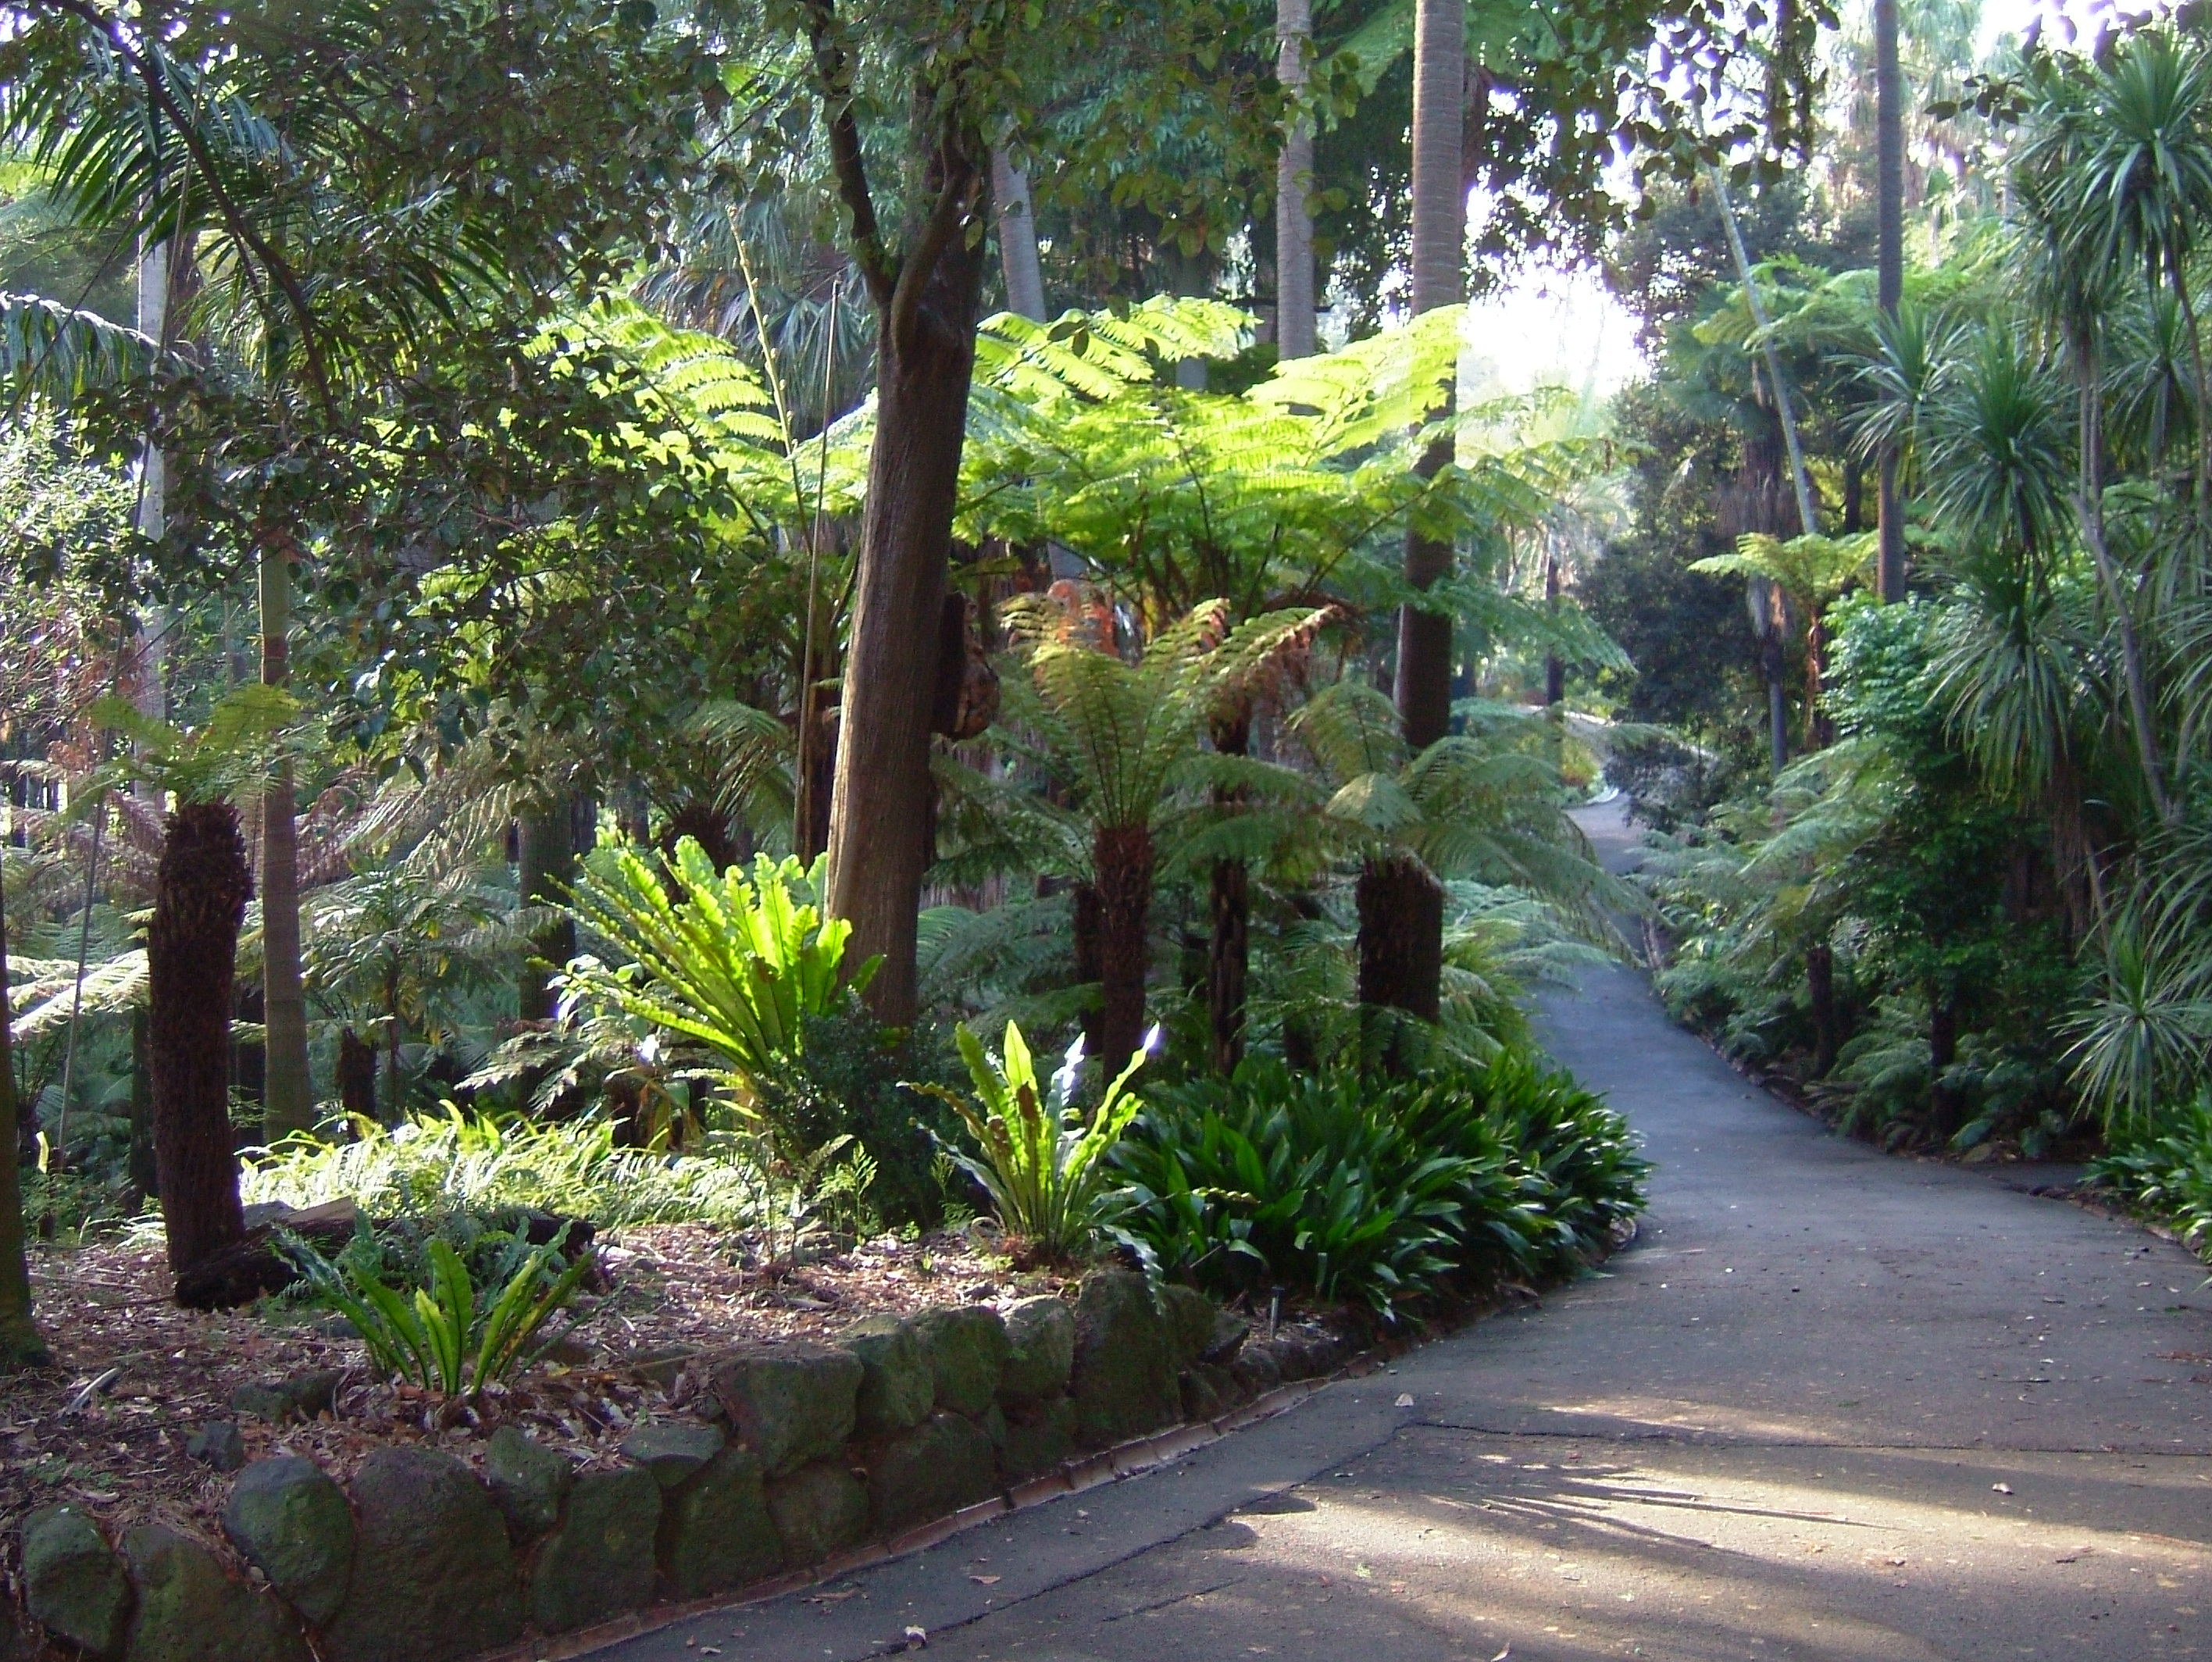 SEE & DO: ROYAL BOTANIC GARDENS